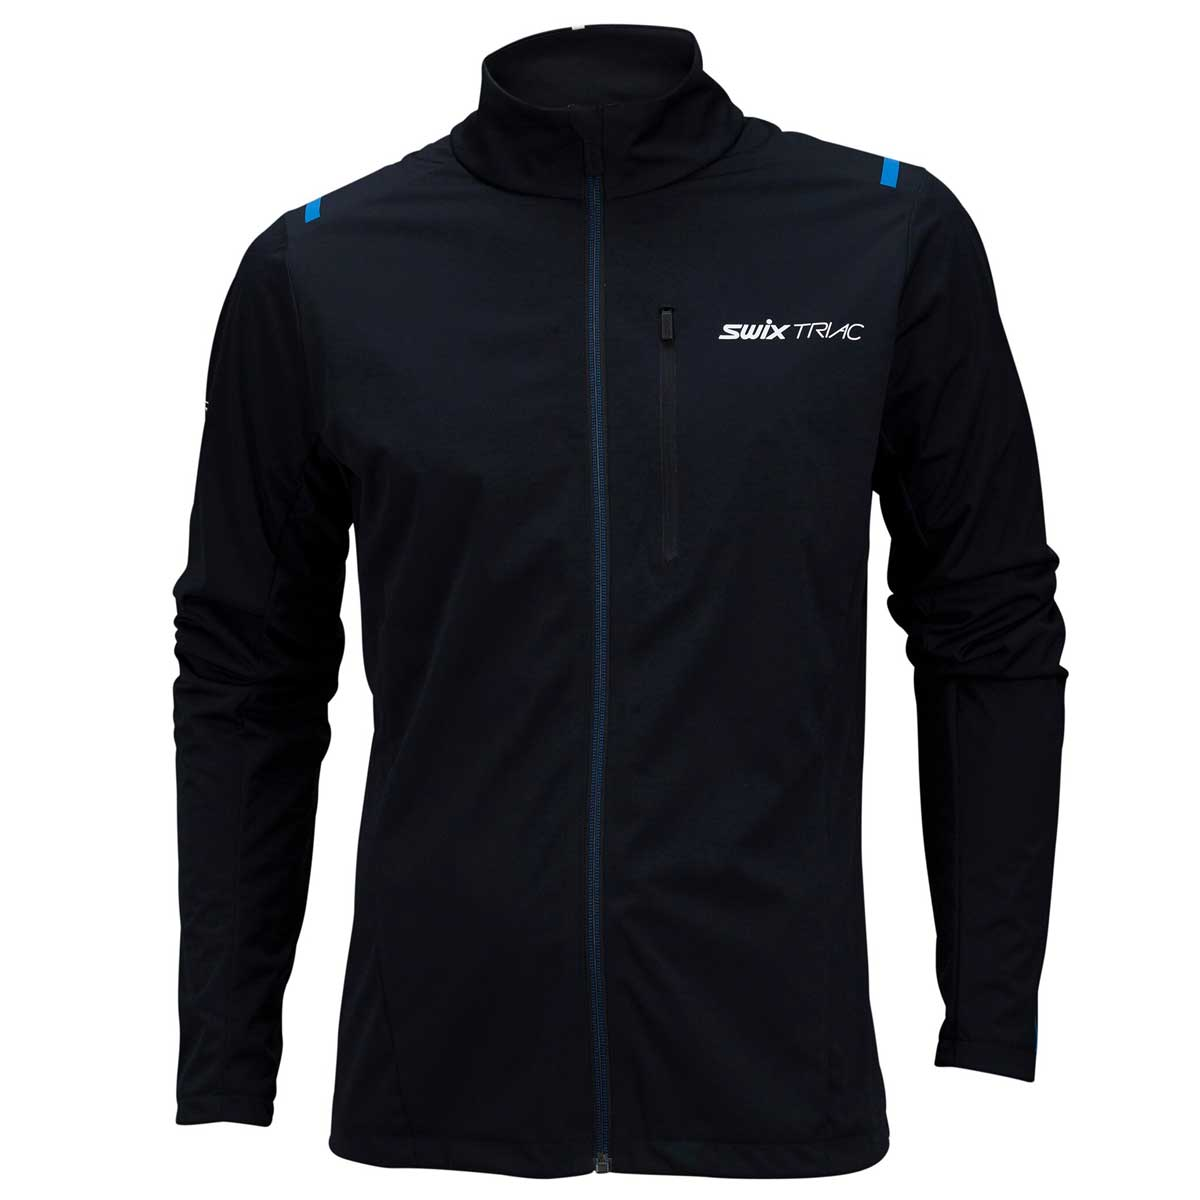 Swix Men's Triac 3.0 jacket in Black